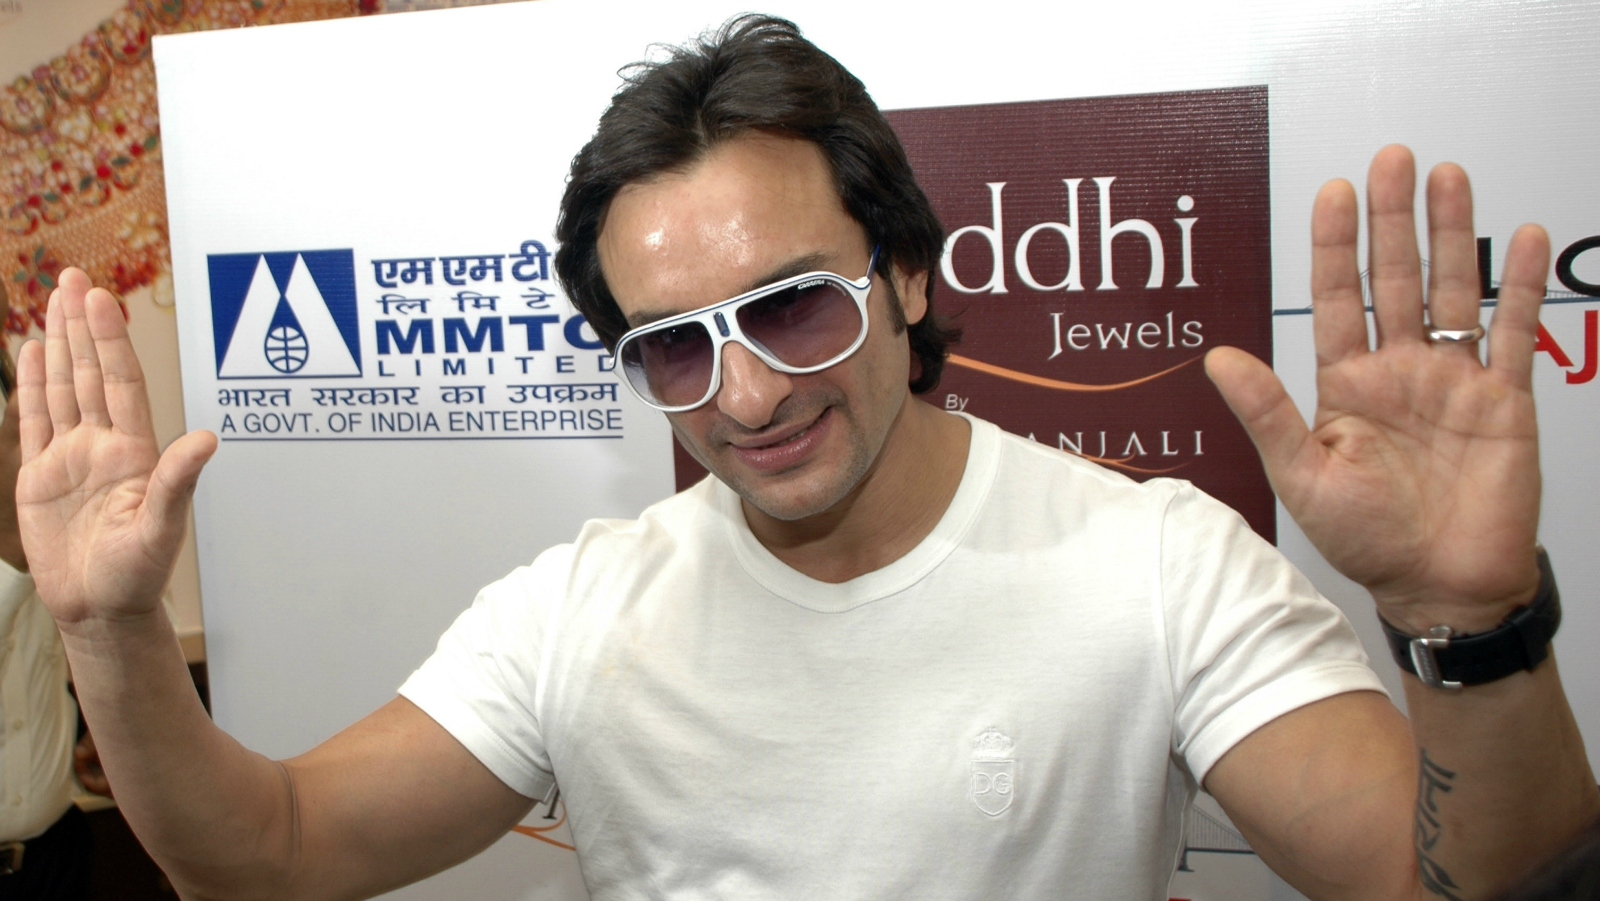 """Bollywood actor Saif Ali Khan gestures during his visit to a jewelry store to felicitate the winner of a contest and also promote his upcoming film """"Love Aaj Kal"""" or Love these days, in Ahmadabad, India, Wednesday, July 22, 2009."""